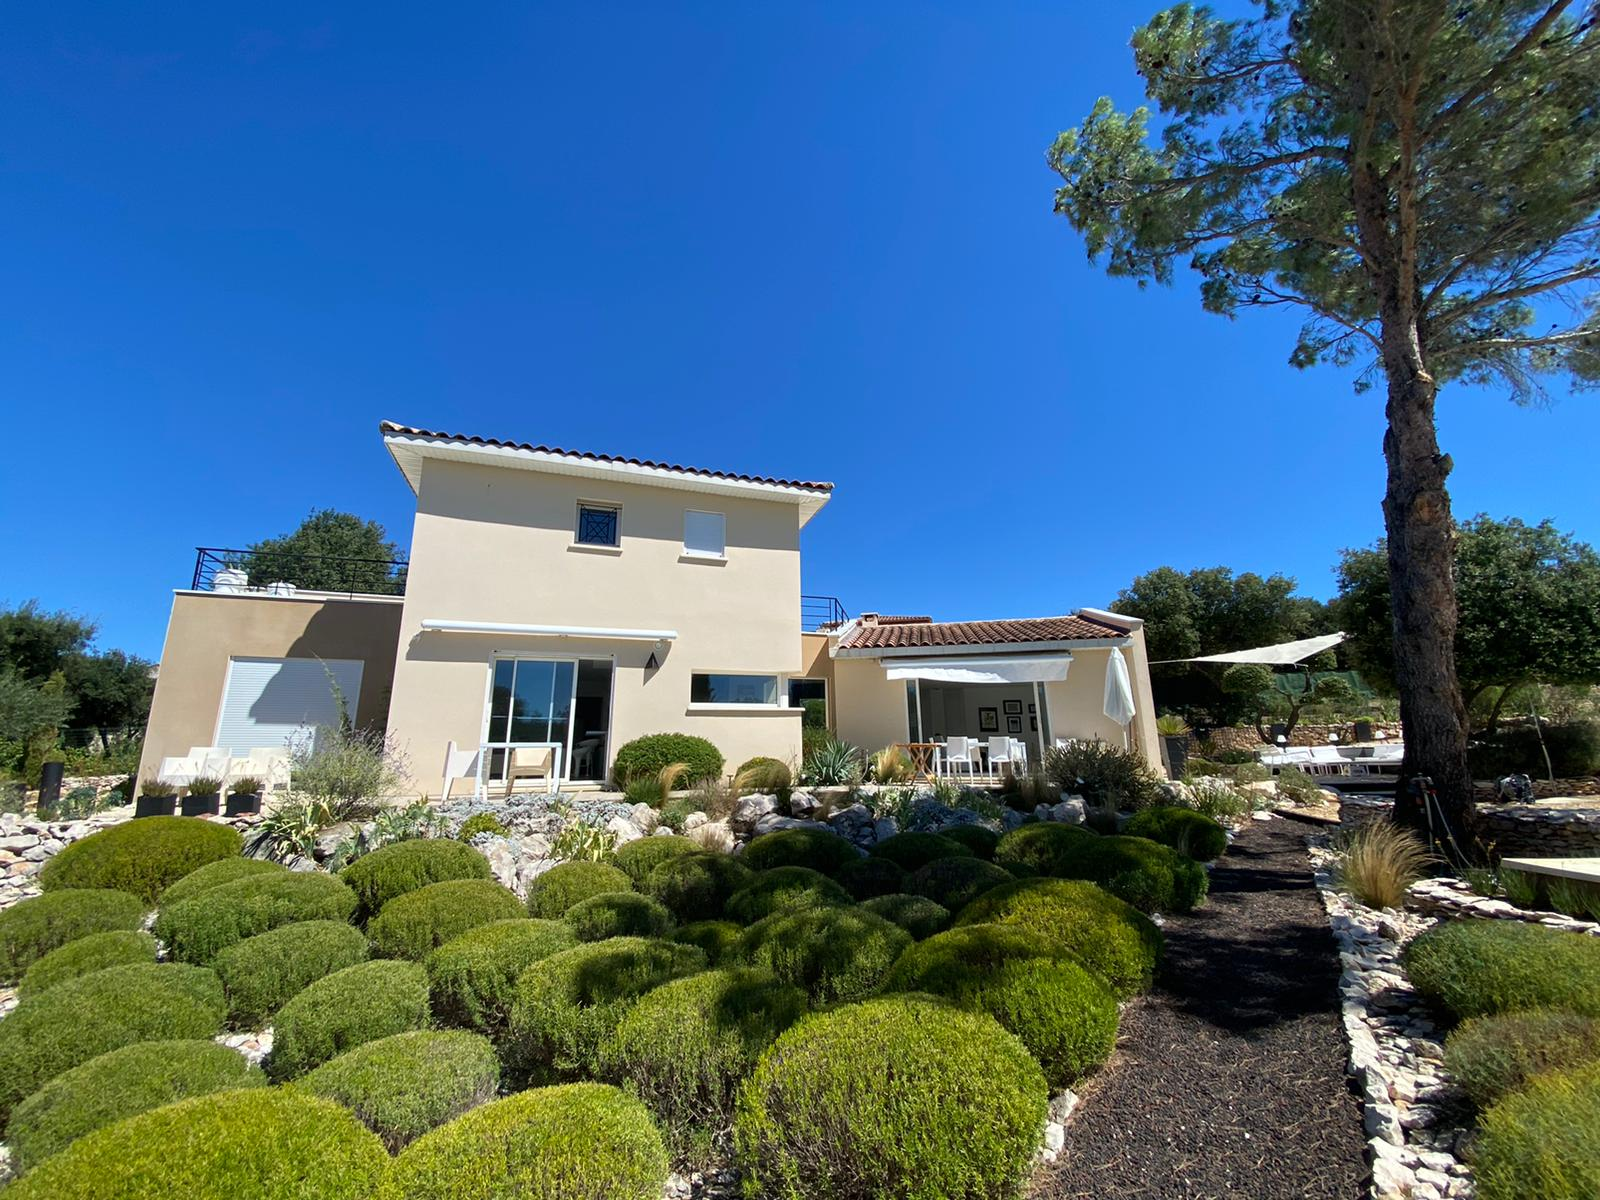 2287 : Uzès, stylish contemporary house, fabulous view, swimming pool and mediterranean garden